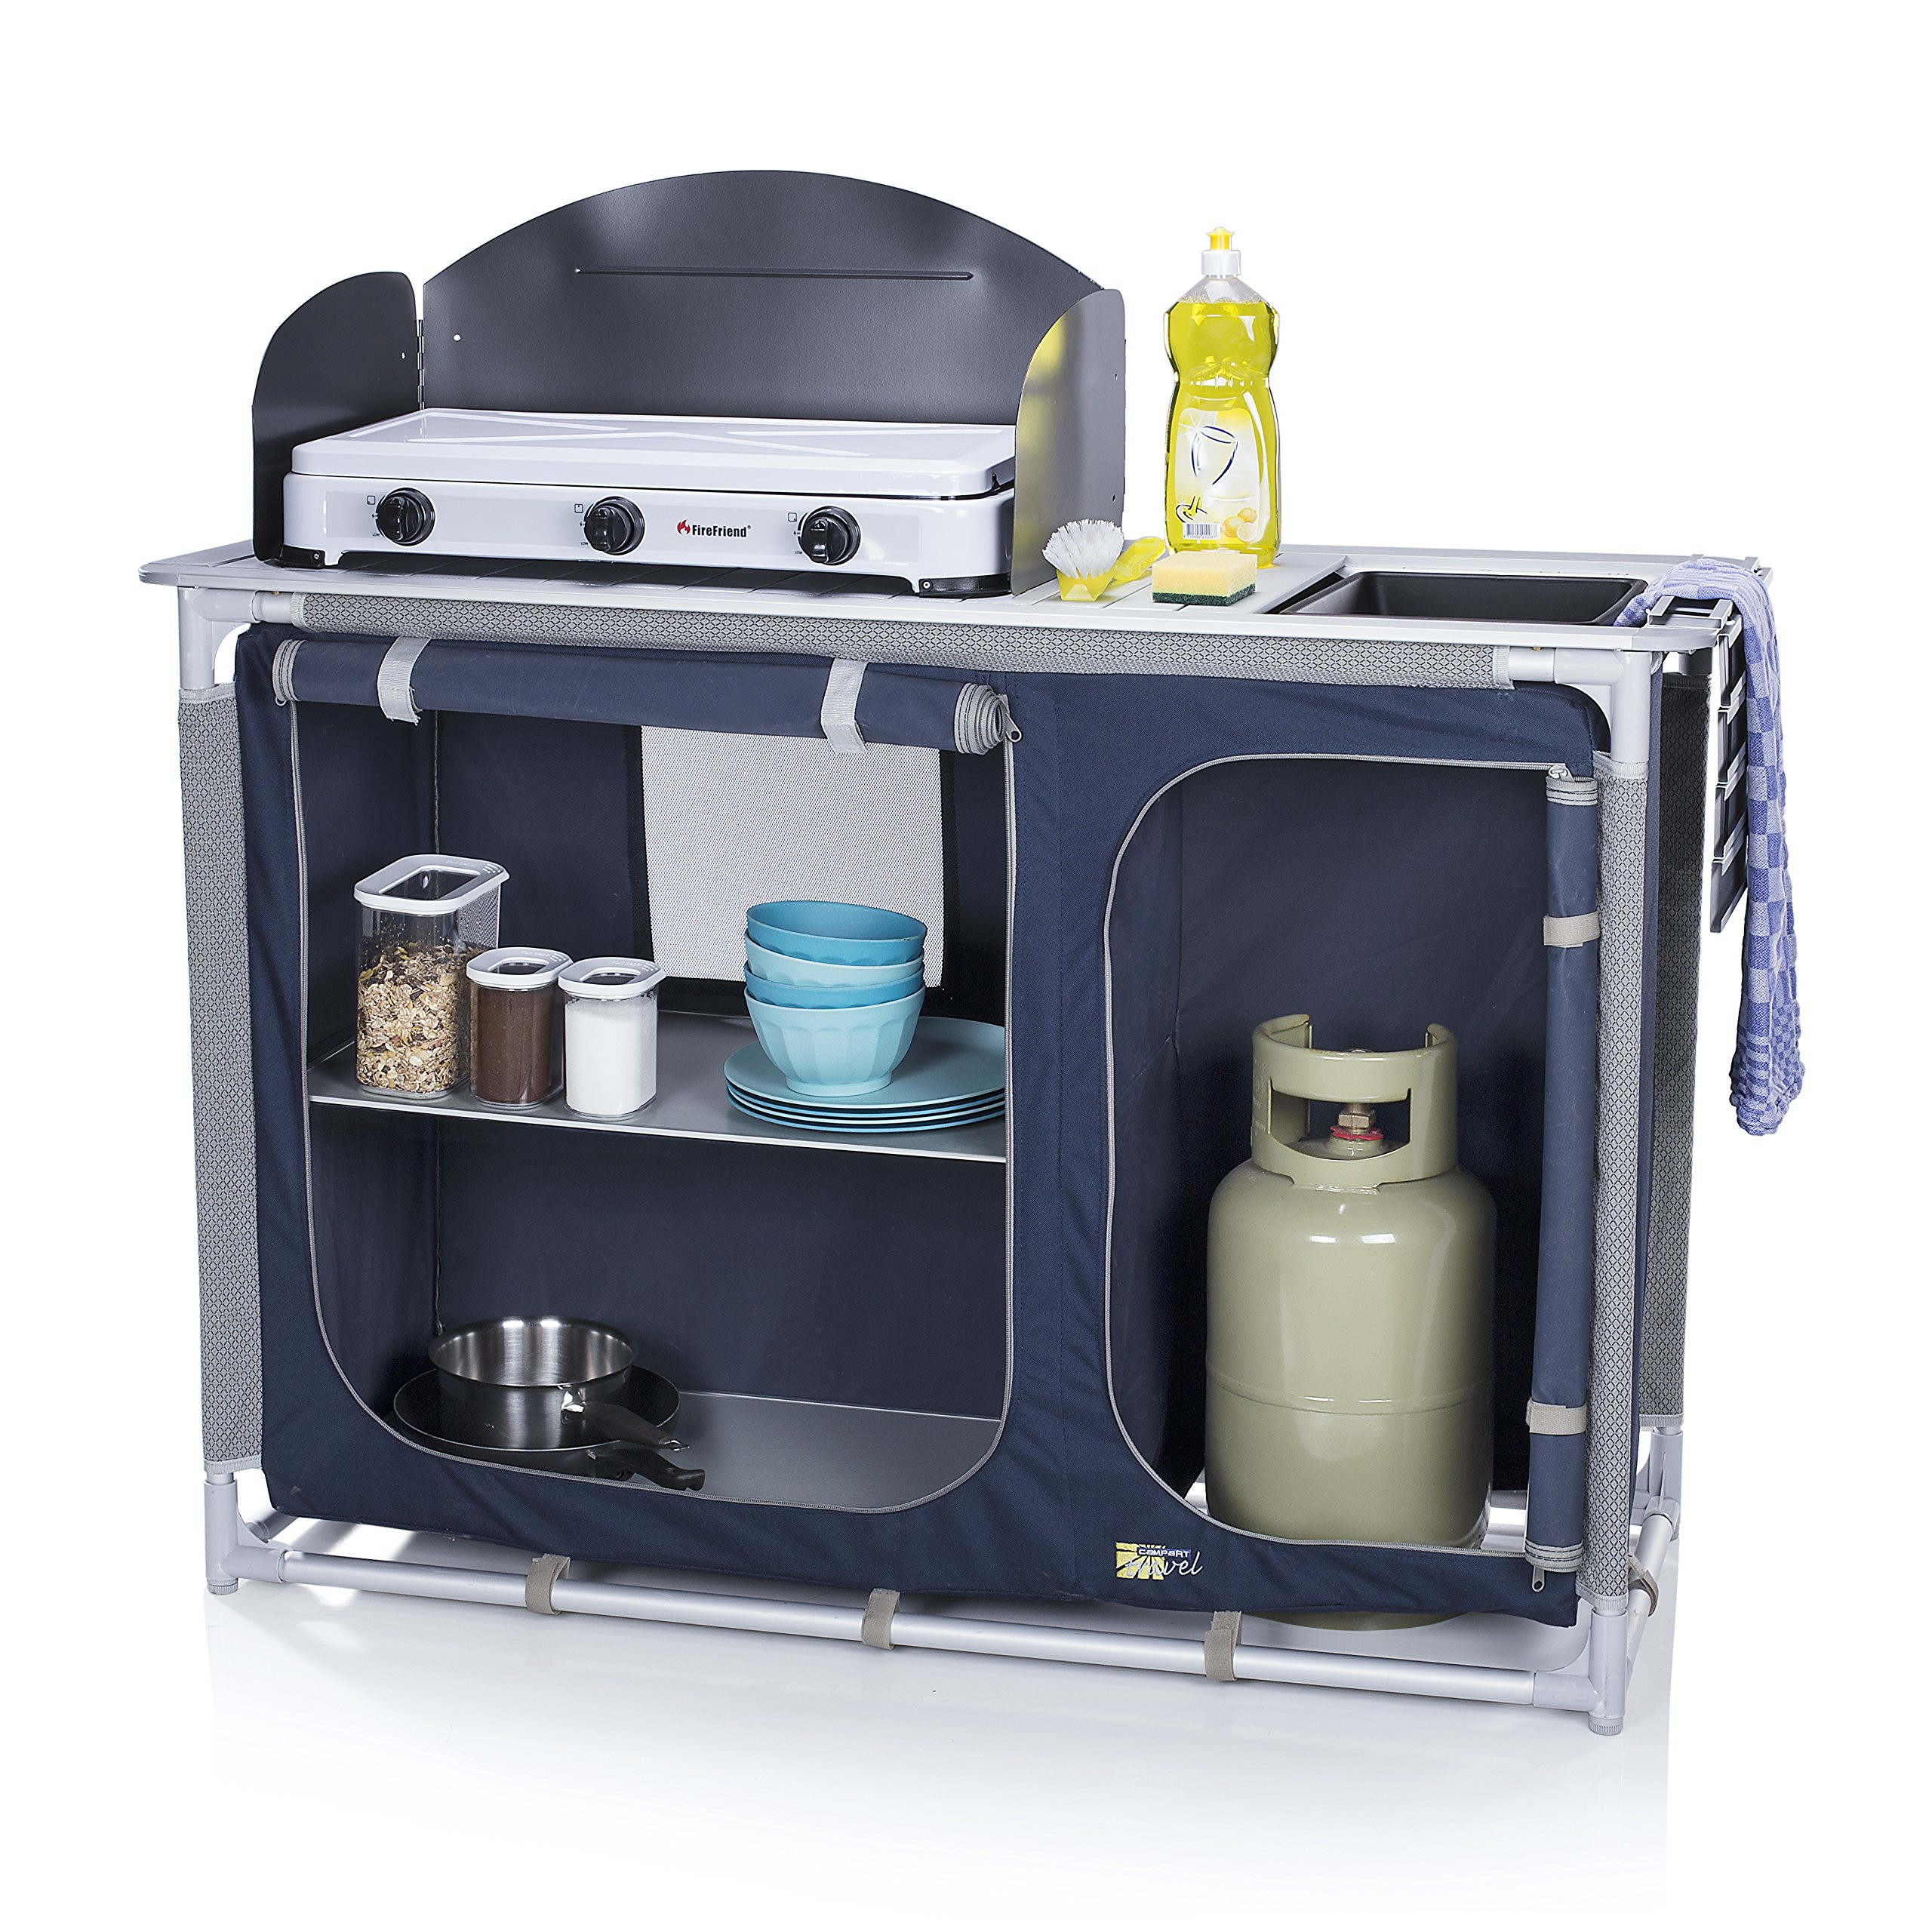 Outdoor Camping Kitchen With Sink  CamPart Travel Camping Outdoor Kitchen Sink with